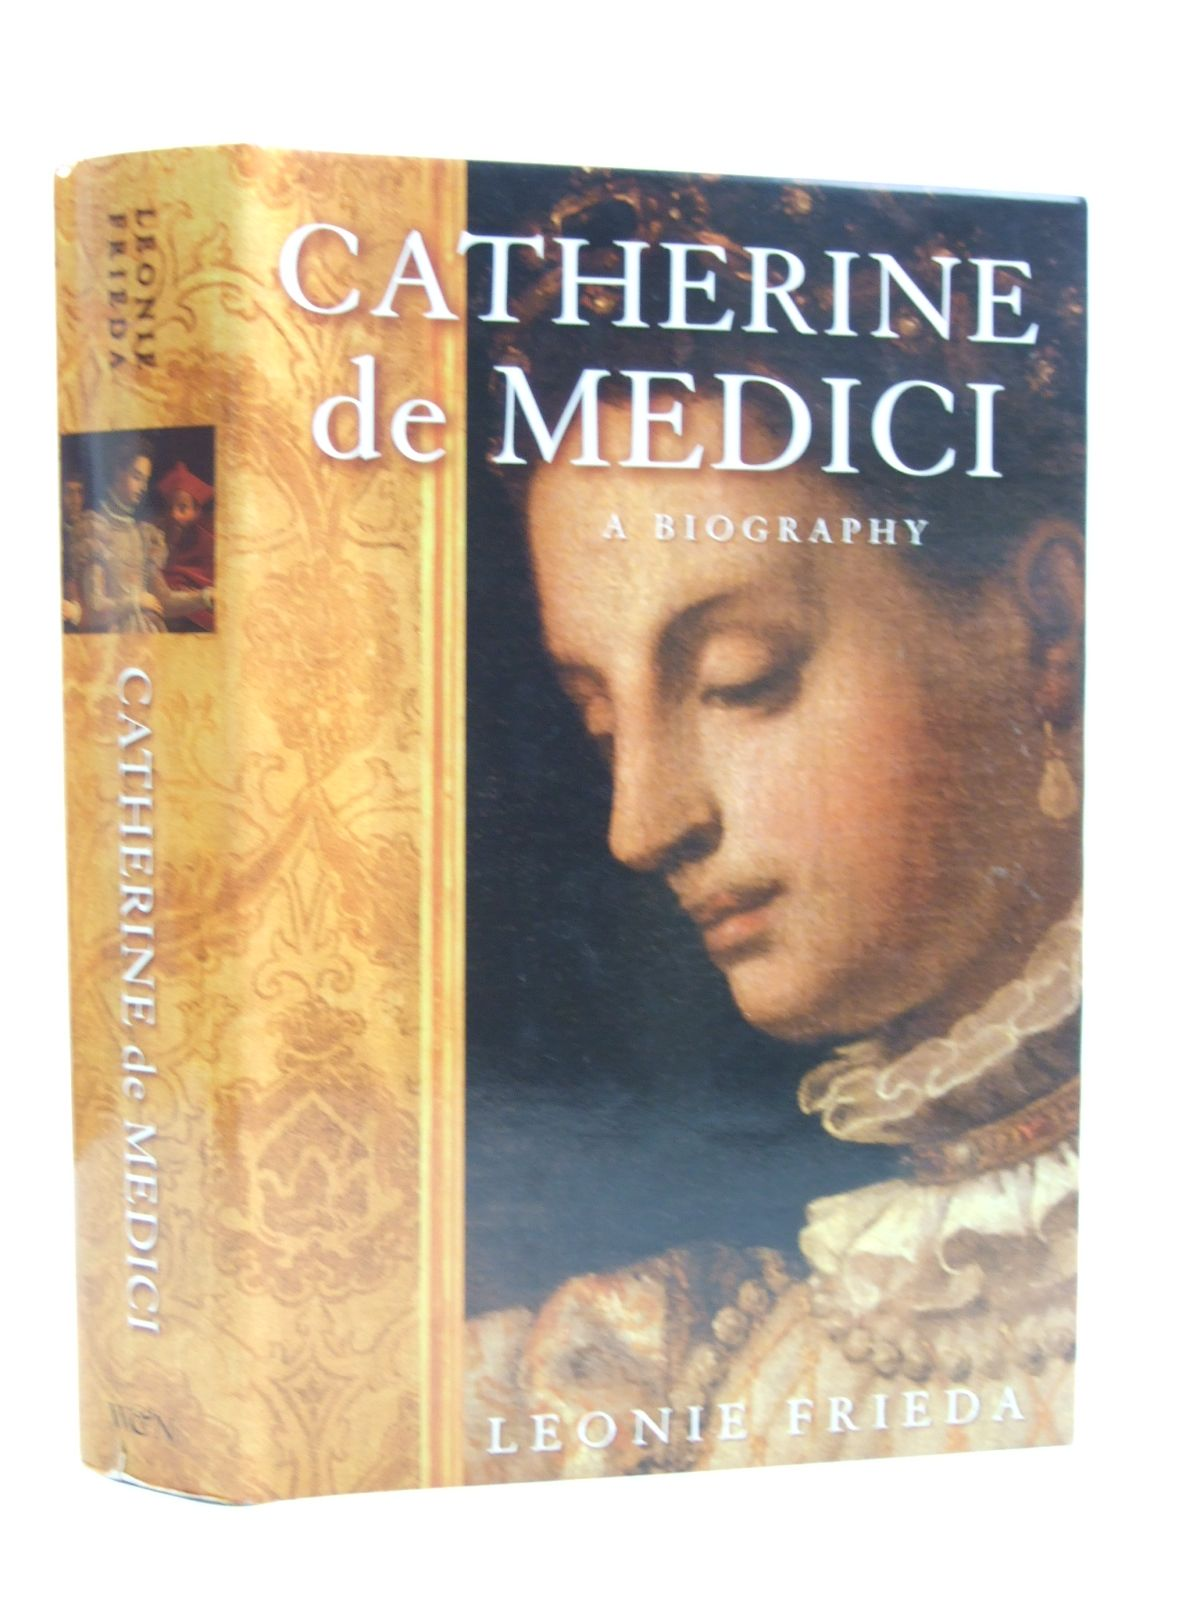 Photo of CATHERINE DE MEDICI A BIOGRAPHY written by Frieda, Leonie published by Weidenfeld and Nicolson (STOCK CODE: 2109544)  for sale by Stella & Rose's Books